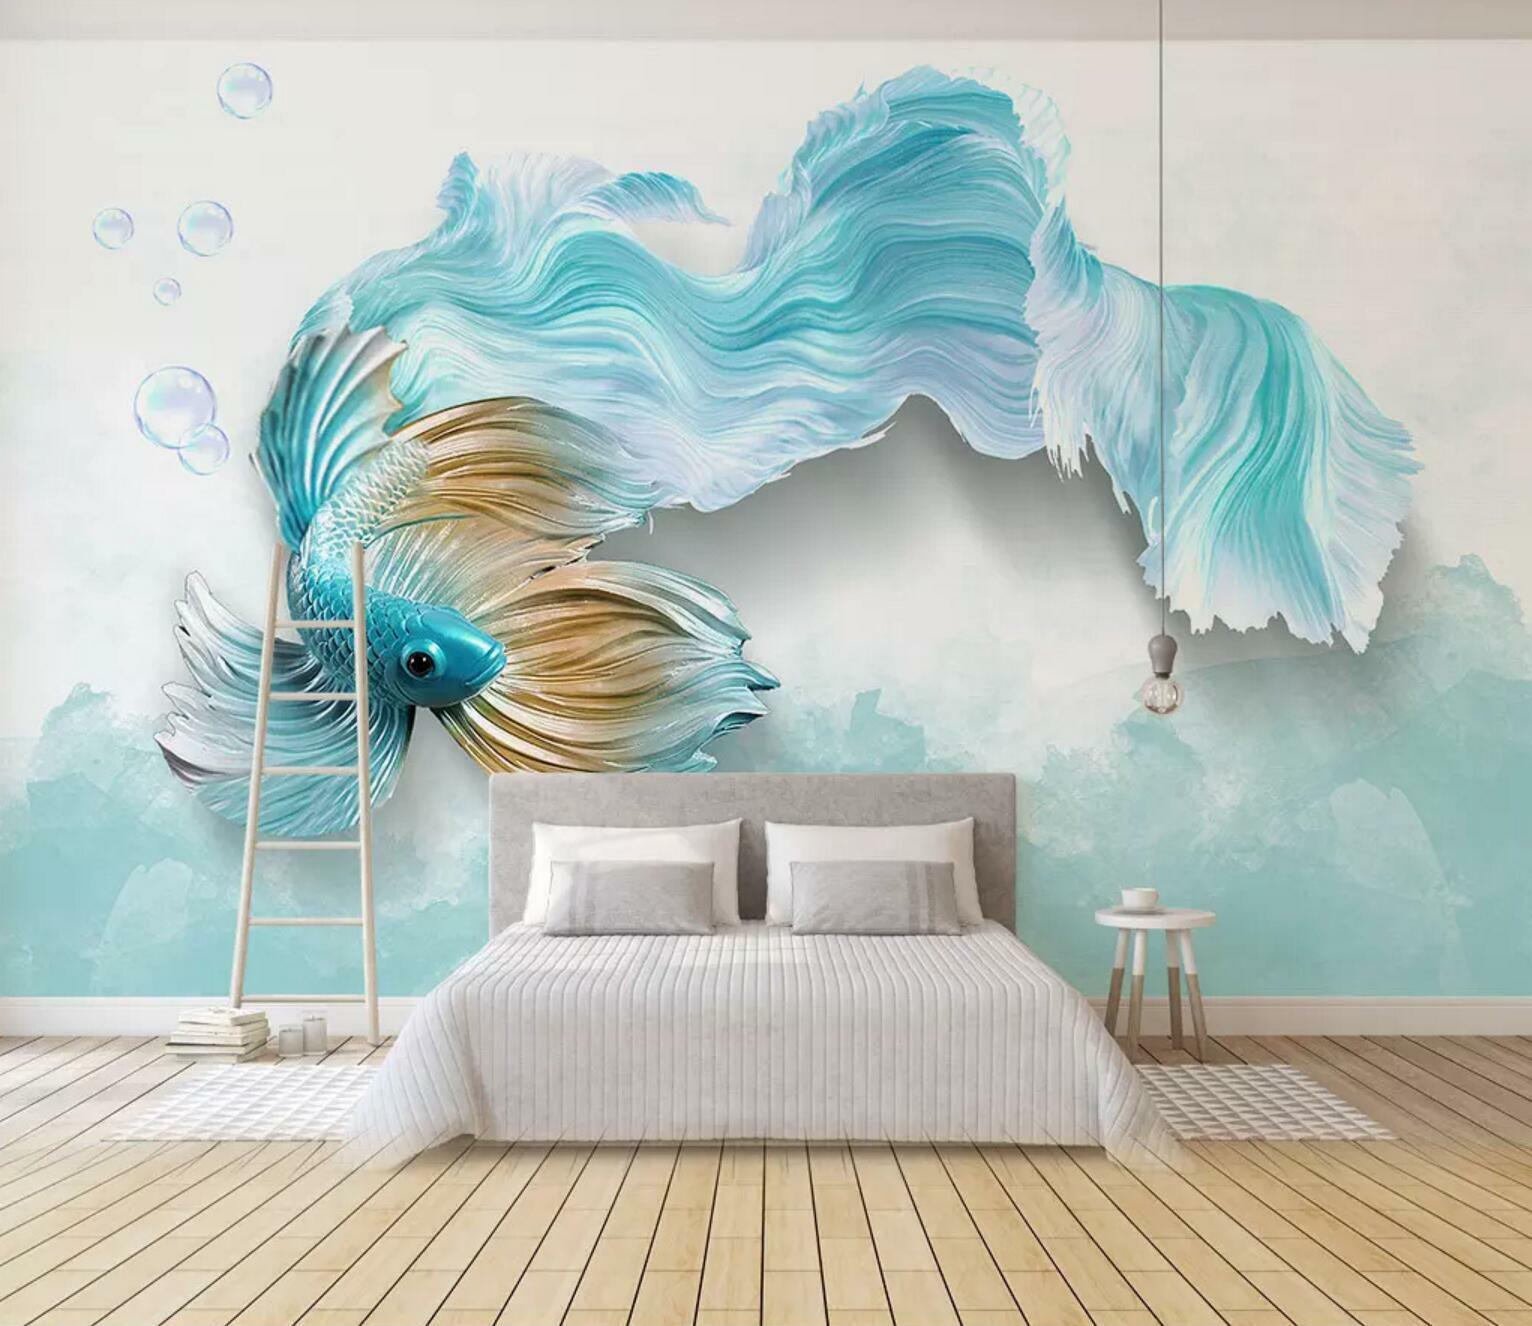 3D Fish Bubble 73 Wall Paper Exclusive MXY Wallpaper Mural Decal Indoor Wall AJ